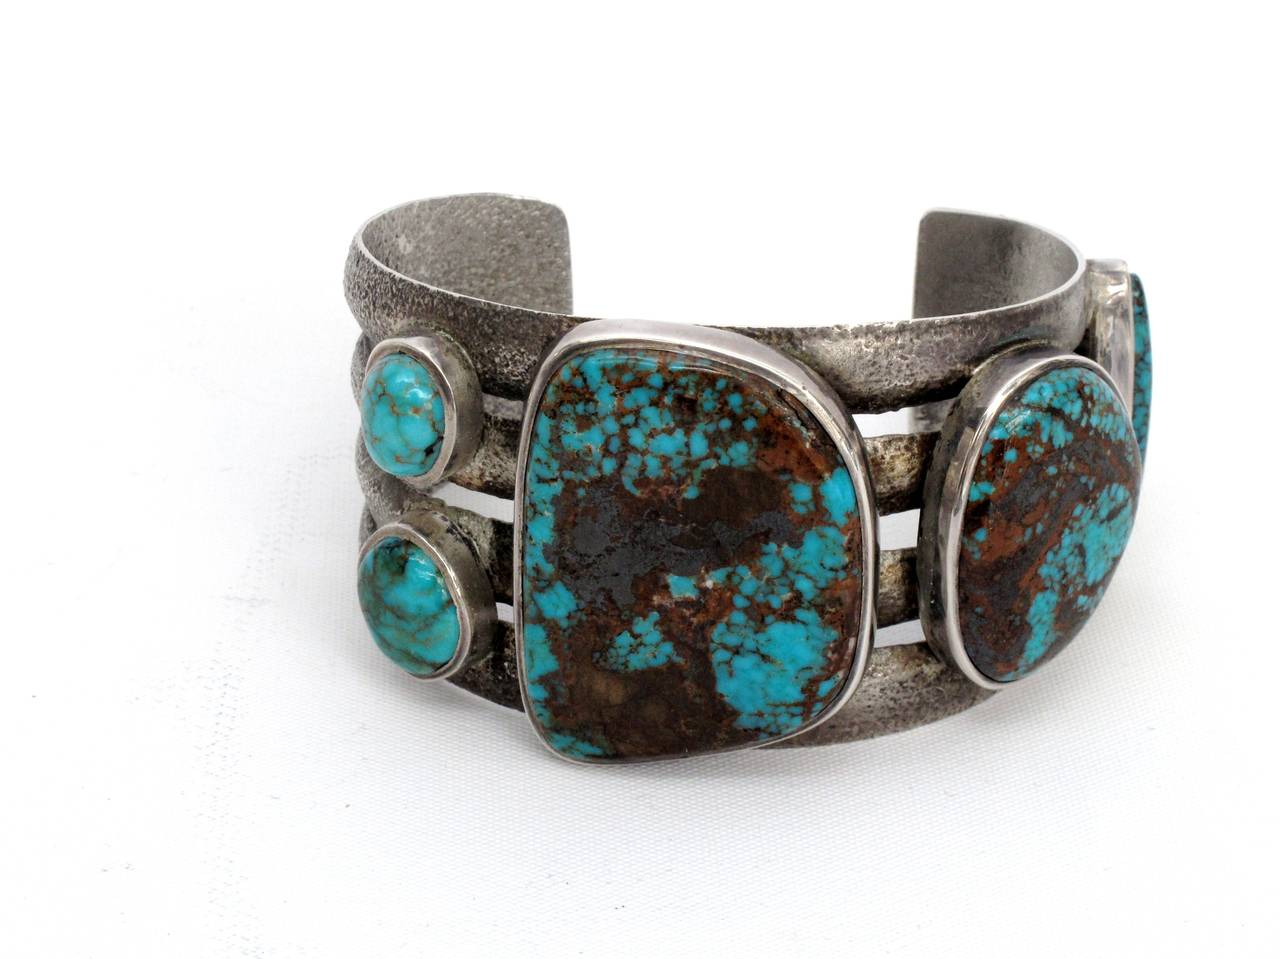 charles loloma jewelry charles loloma tufa turquoise cast silver bracelet at 1stdibs 1192